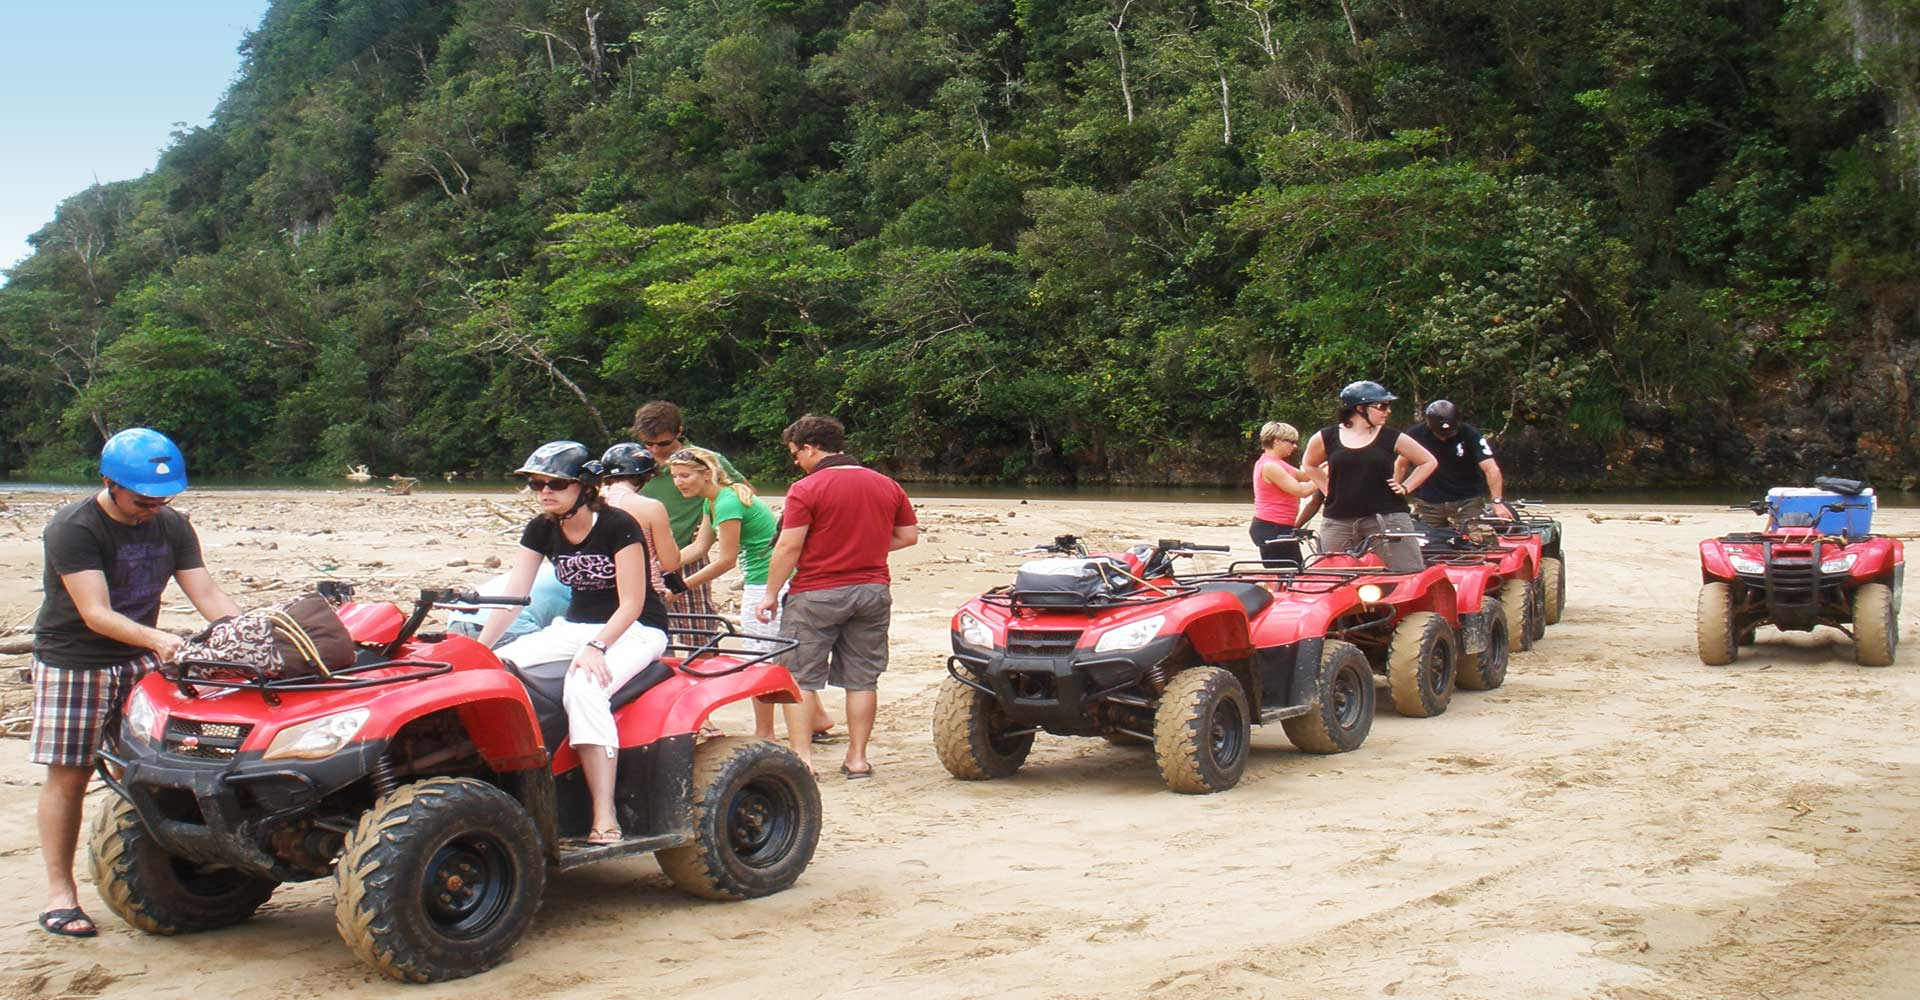 One of the Best Excursions in Samana : ATV Quad in Samana Dominican Republic from Las Terrenas.